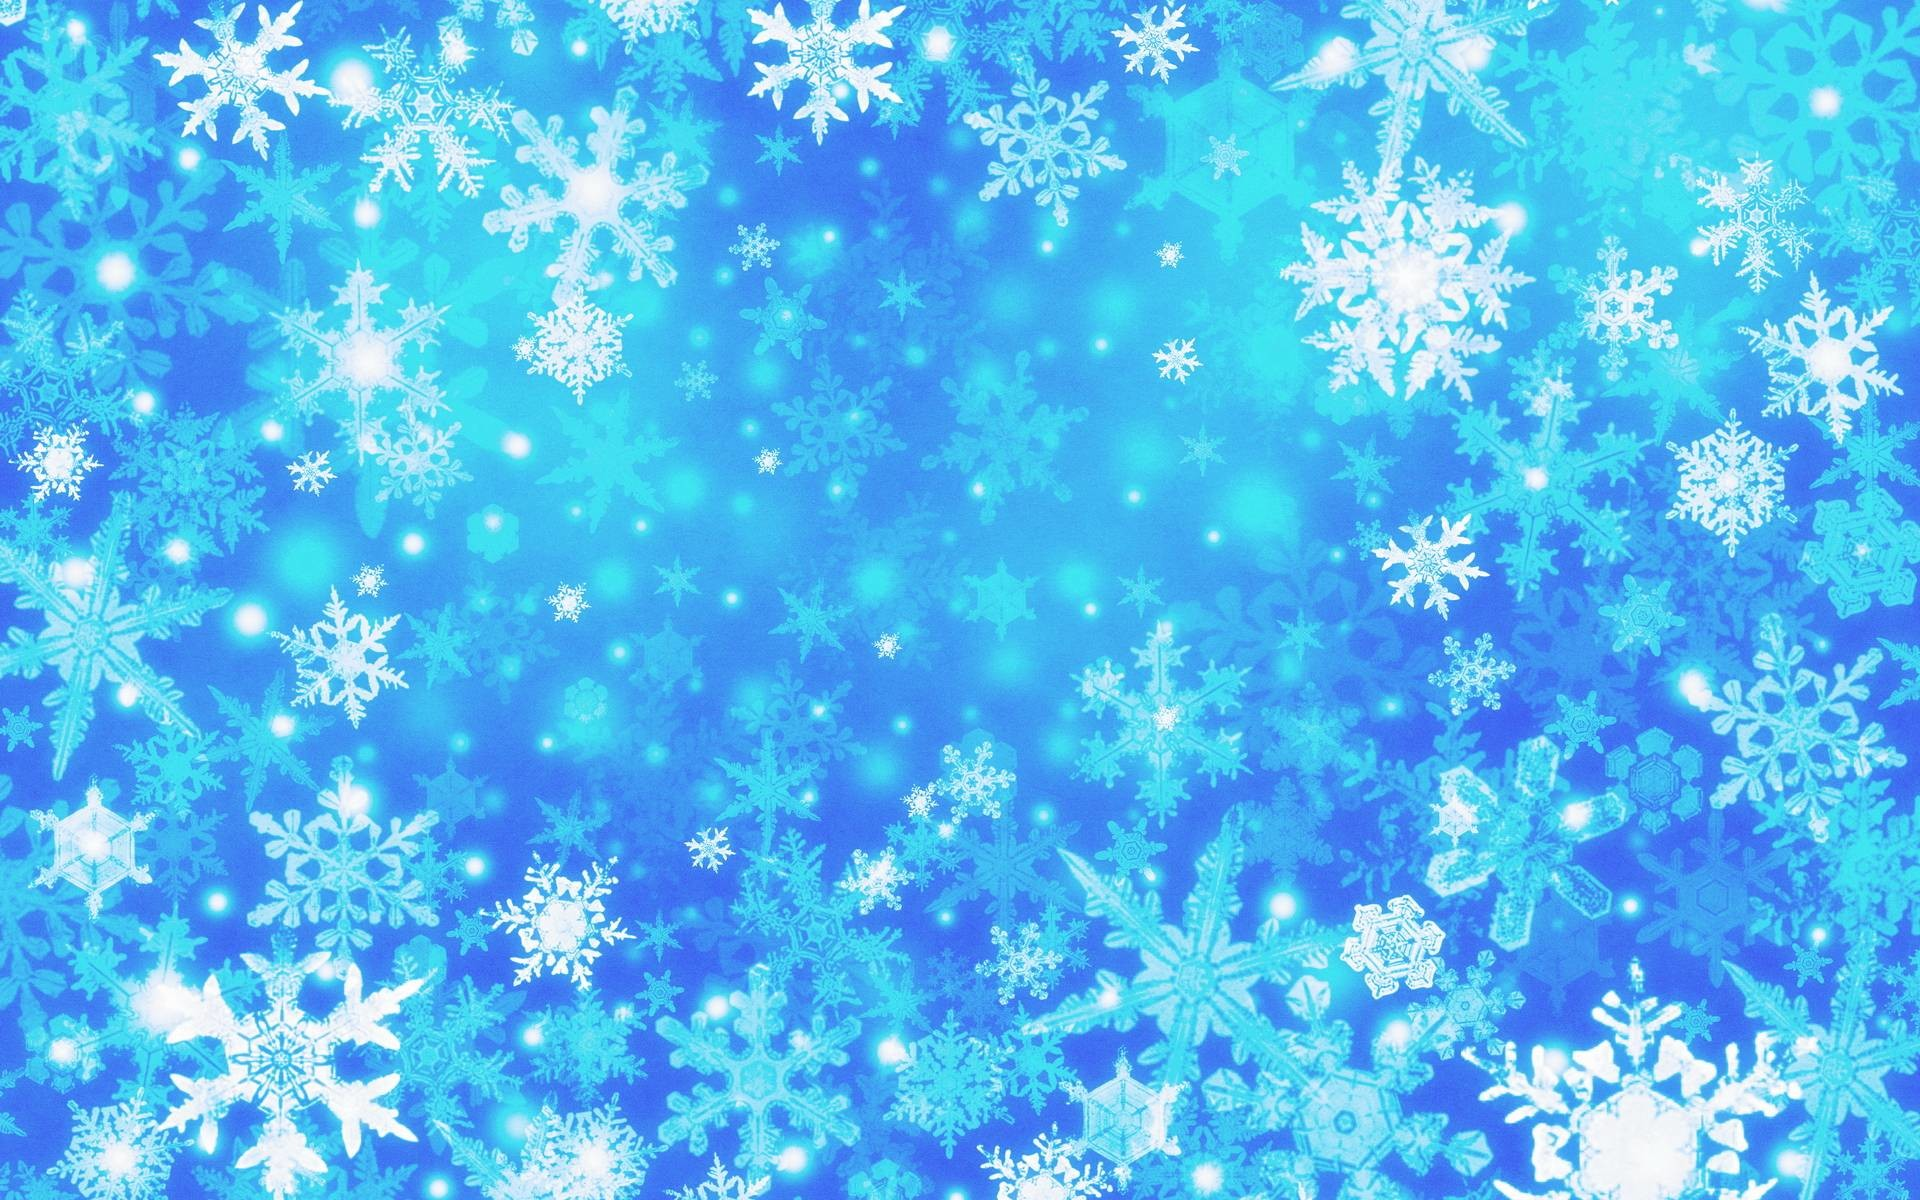 Falling Snow Animated Wallpaper Snow Background Pictures 59 Images